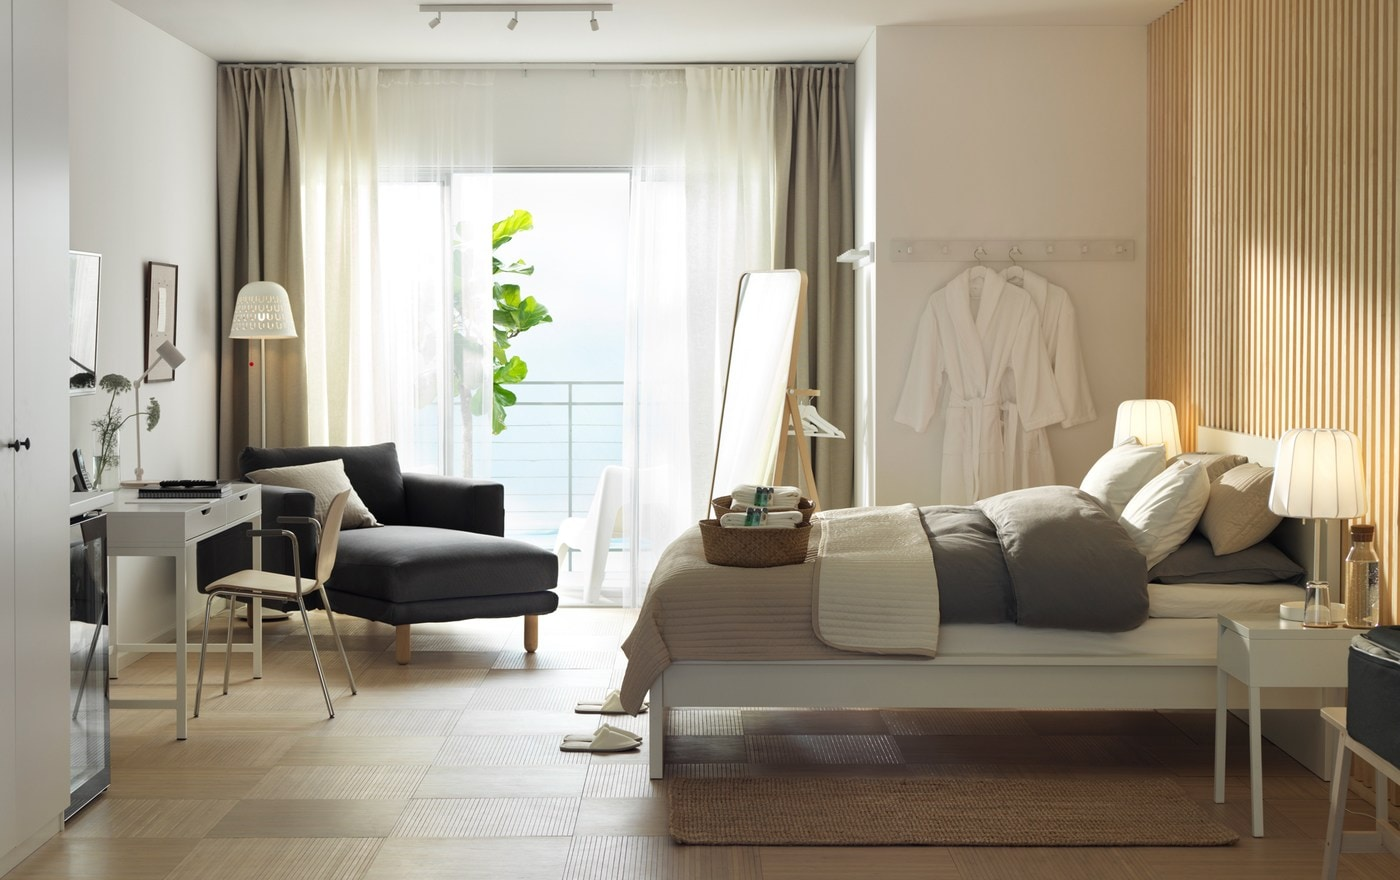 A white and wooden walled hotel room with an IKEA MALM white bedframe, white desk, chaise longues and a sea view.